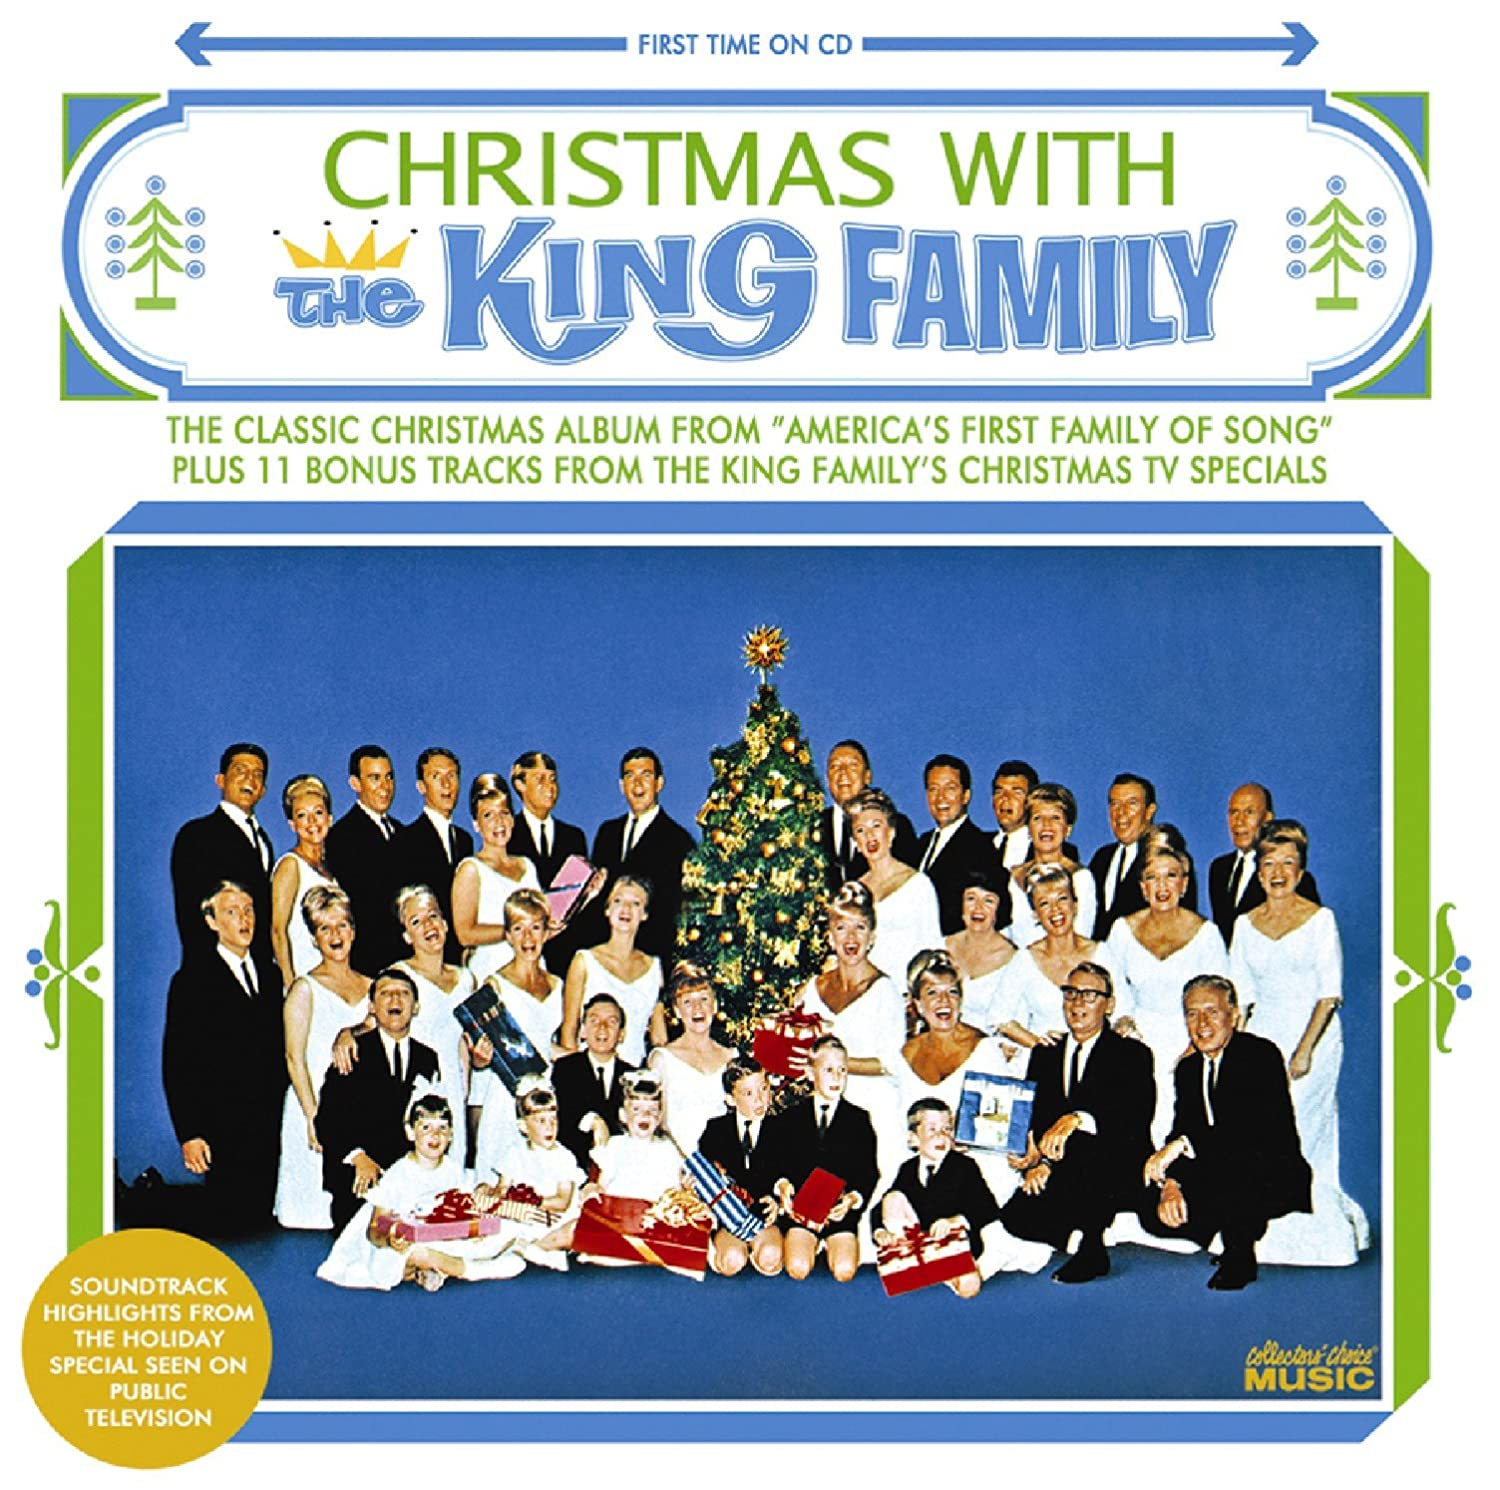 The King Family - Christmas With The King Family - Amazon.com Music